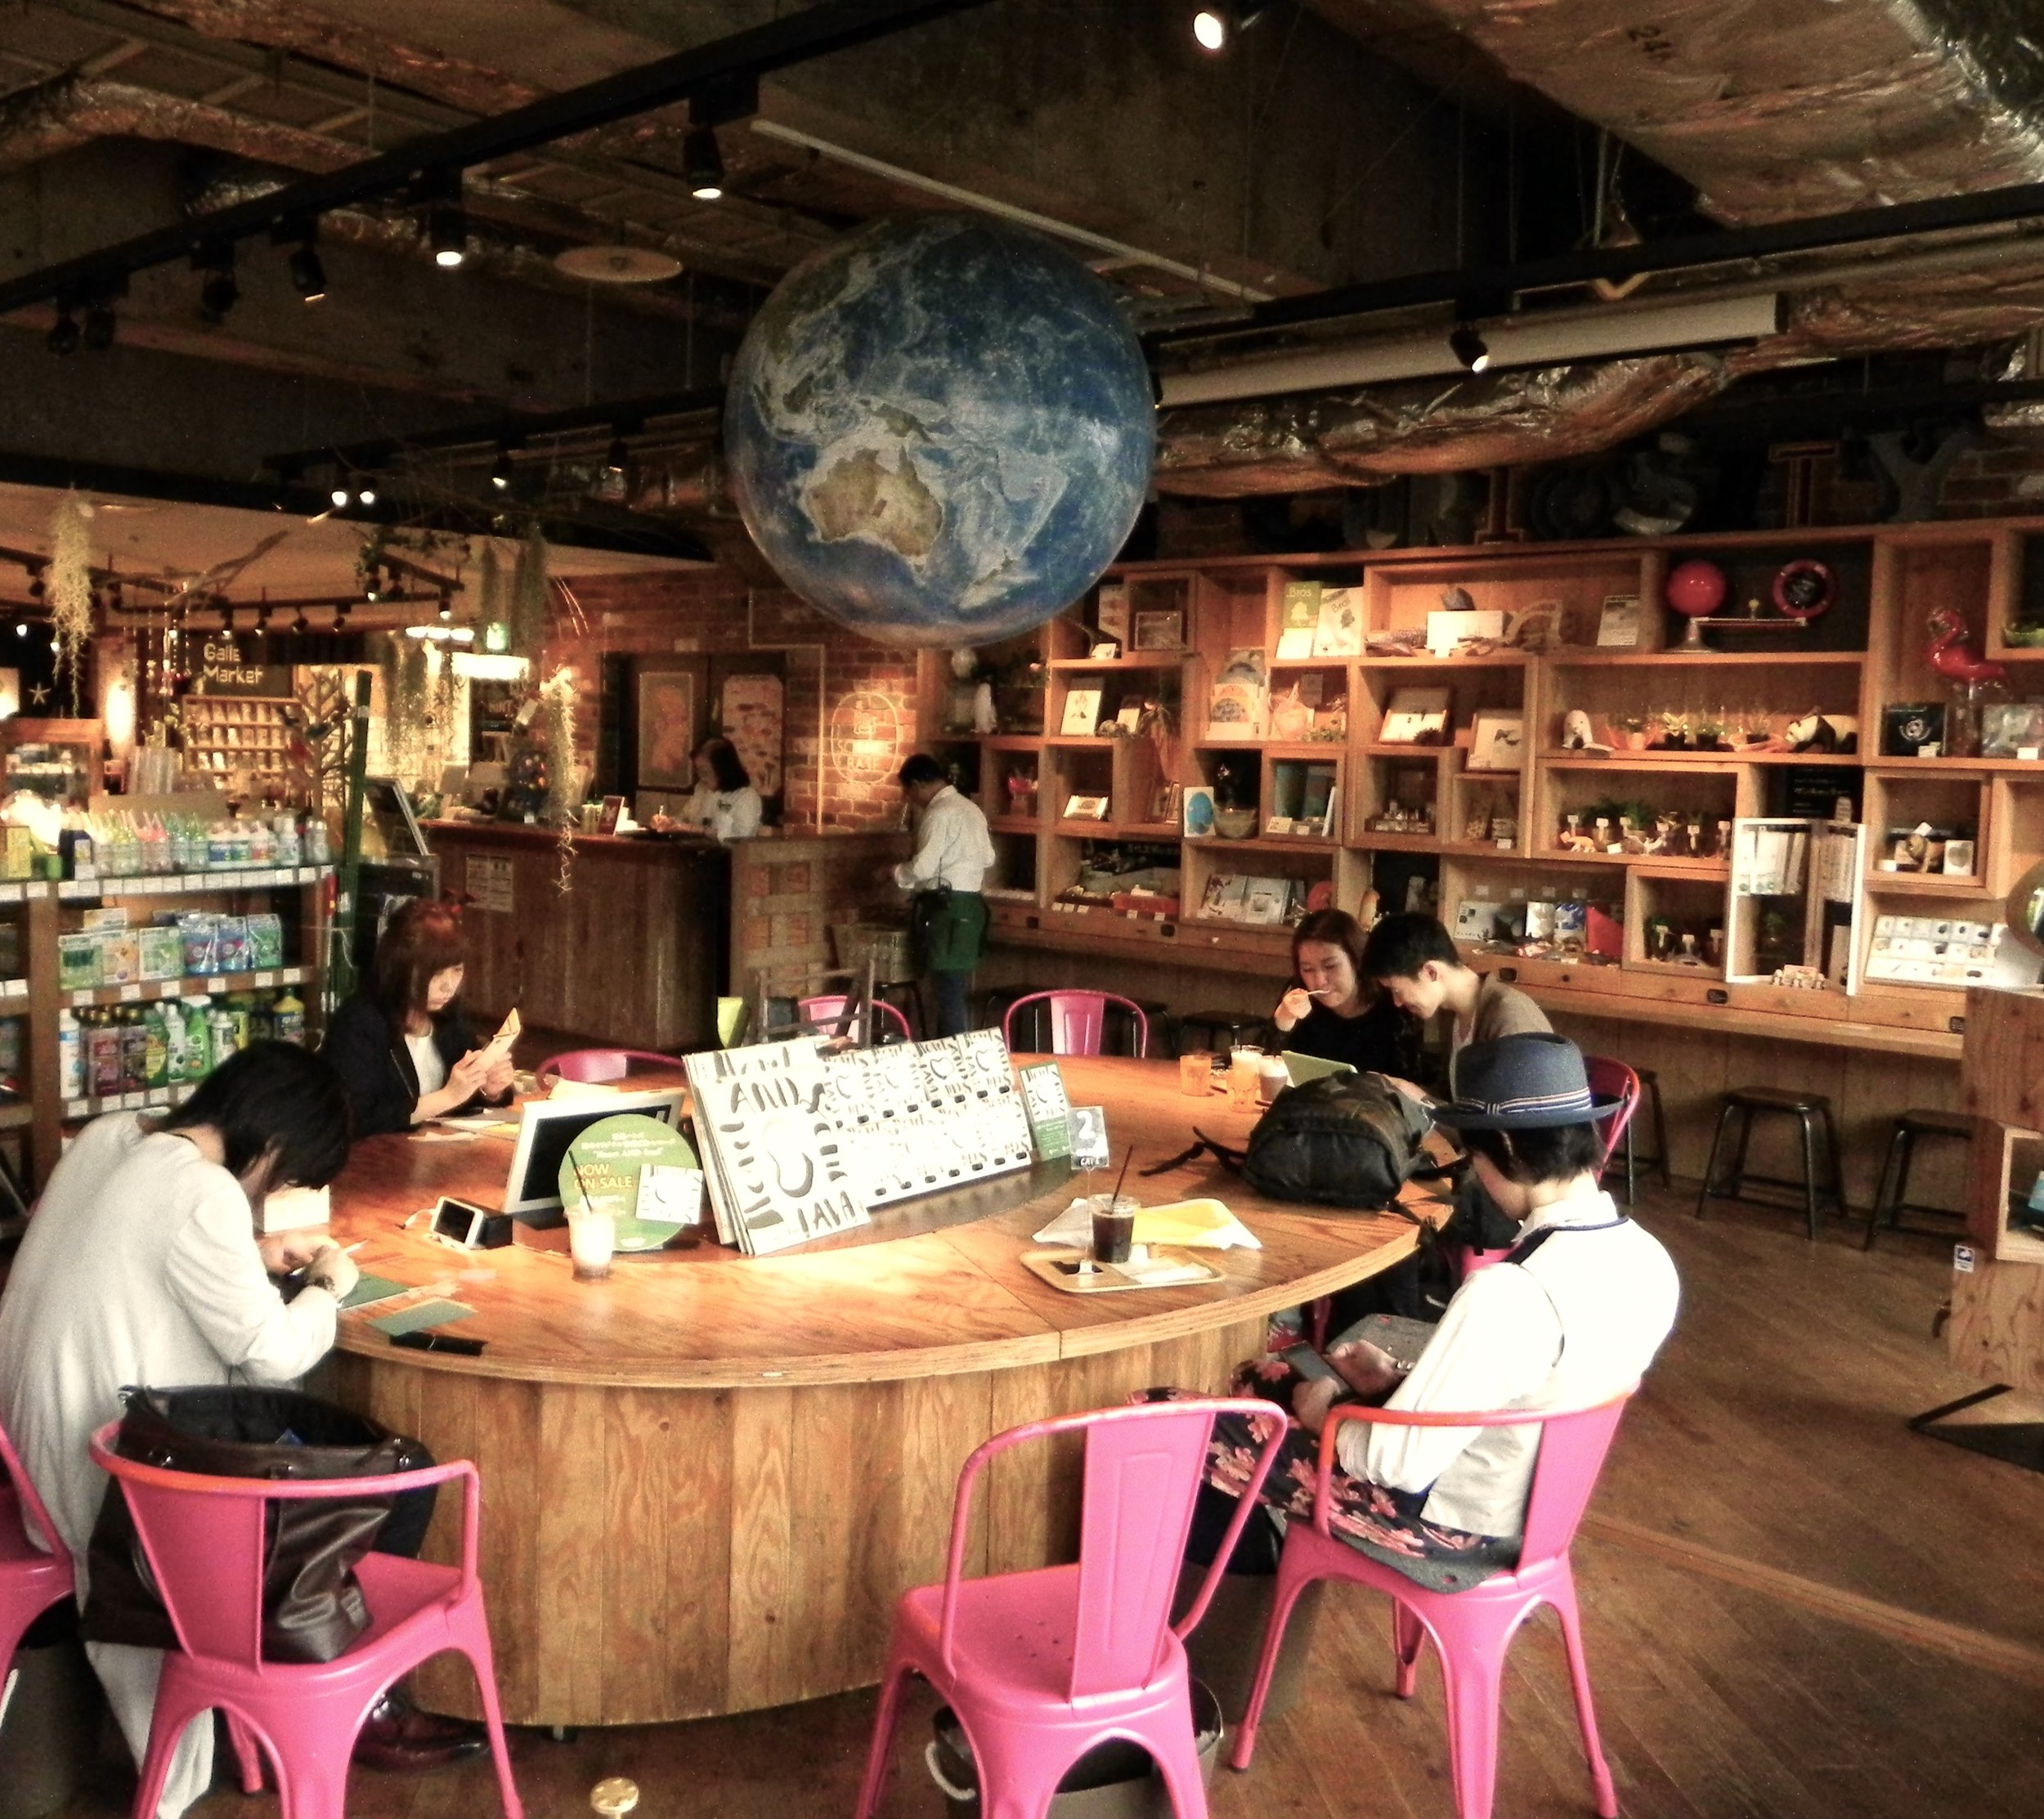 6.Tokyu hands - This might be our favorite place of all in Tokyo. Tokyu Hands is an entire building filled with absolutely everything from DIY things, to plants, to suitcases, to books, to food... Here we have found things we have never seen anywhere else before. Go check it out!